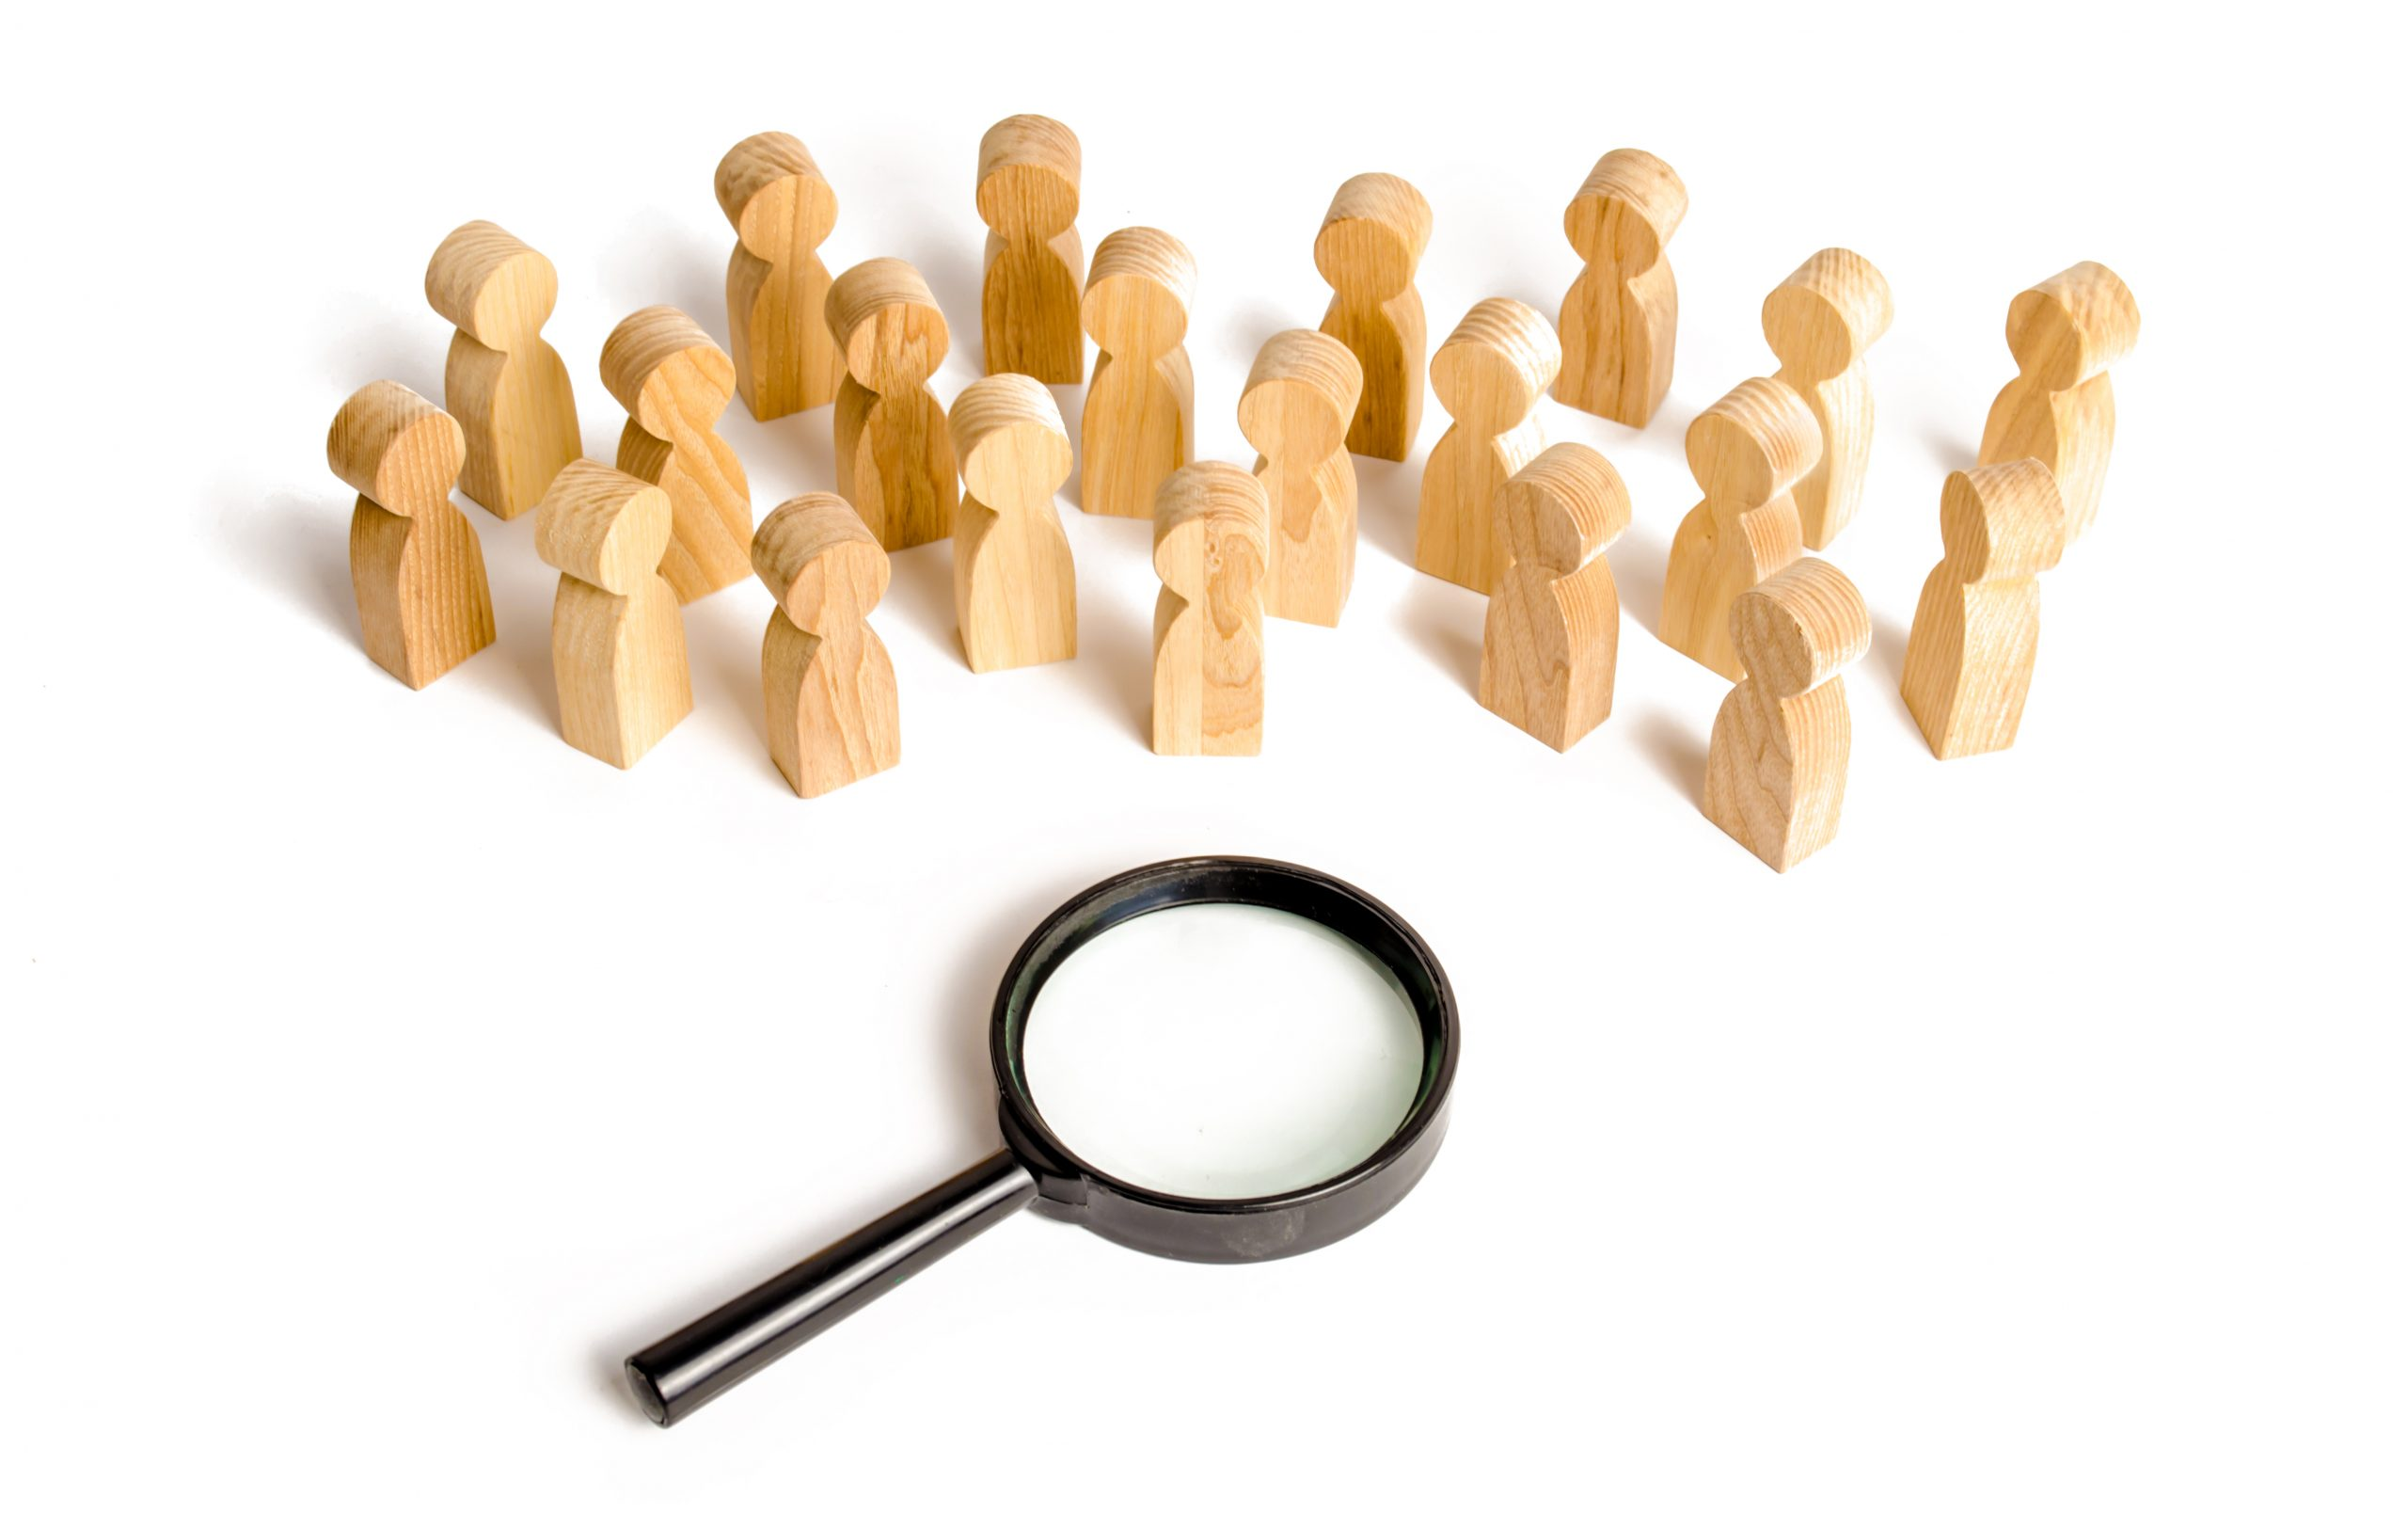 wooden figurines representing people in front of a magnifying glass